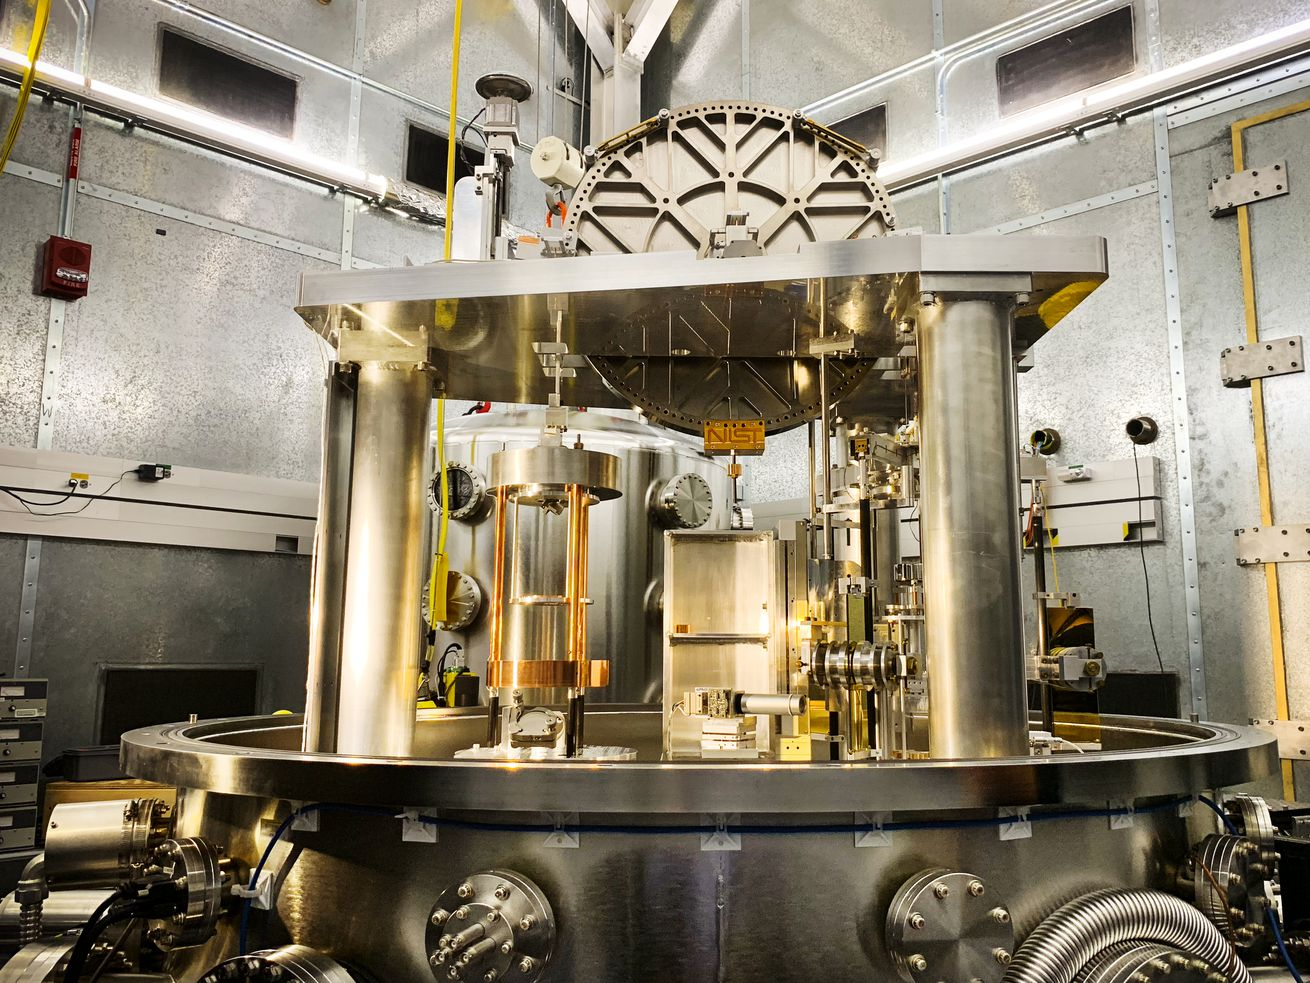 The Kibble balance is the machine that makes the redefinition of the kilogram possible.